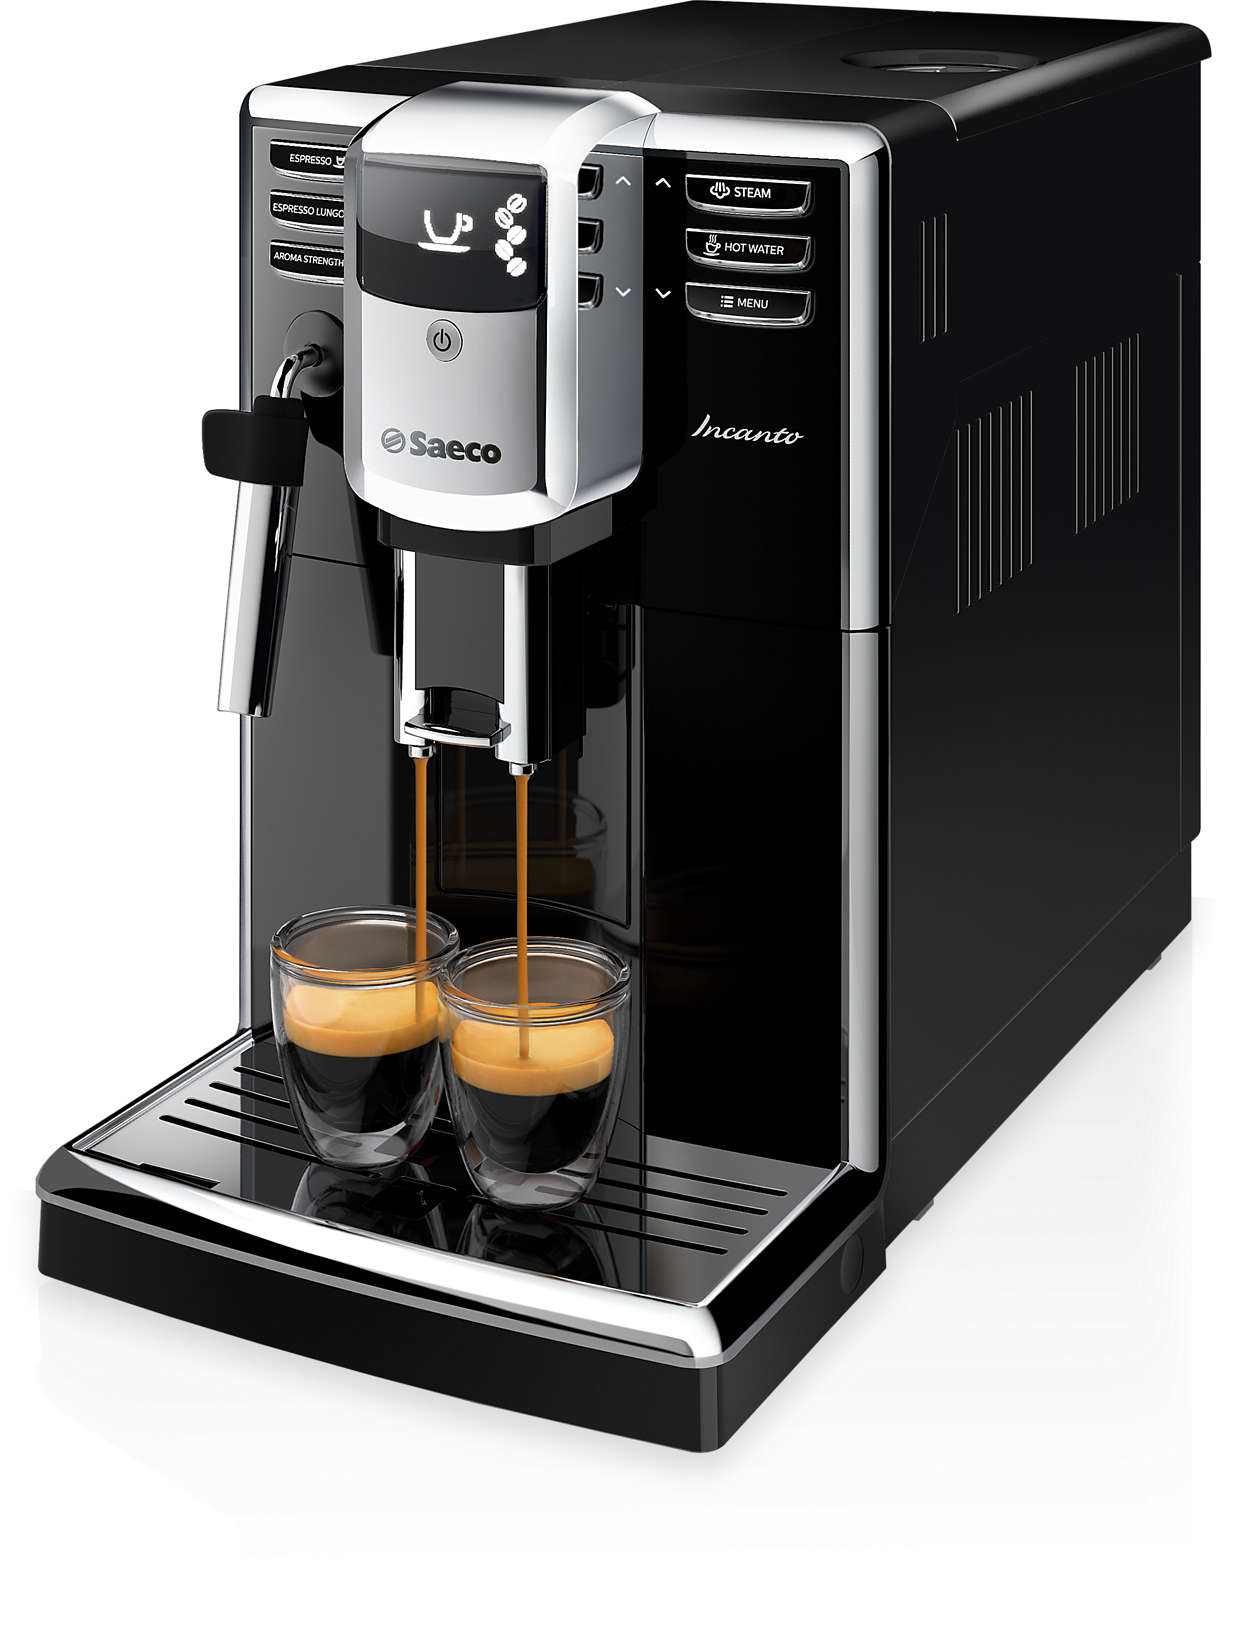 incanto super automatic espresso machine hd8911 47 saeco. Black Bedroom Furniture Sets. Home Design Ideas